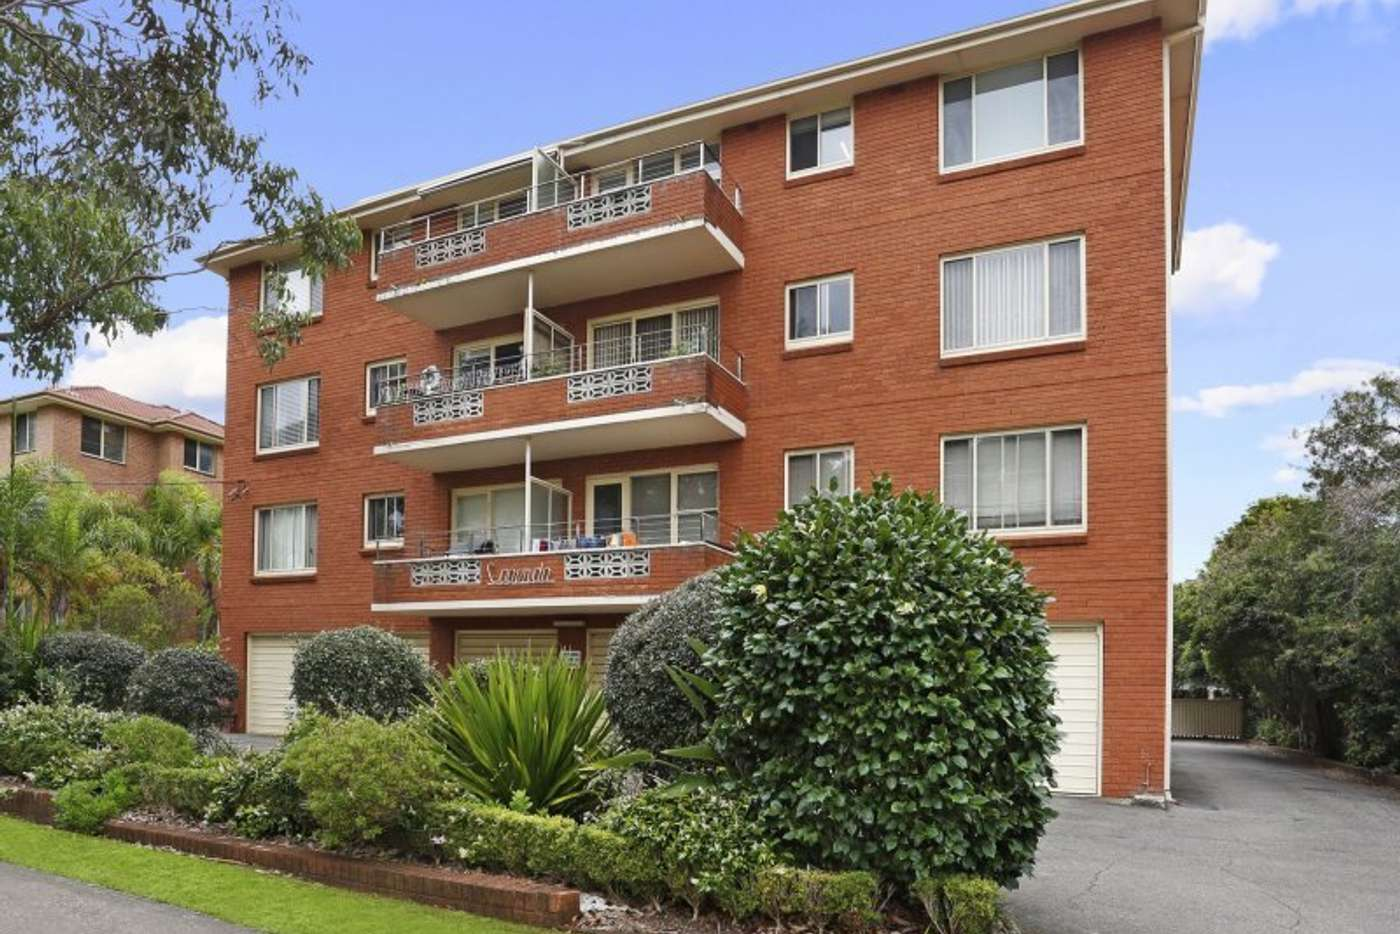 Main view of Homely apartment listing, 6/38 Judd Street, Cronulla NSW 2230